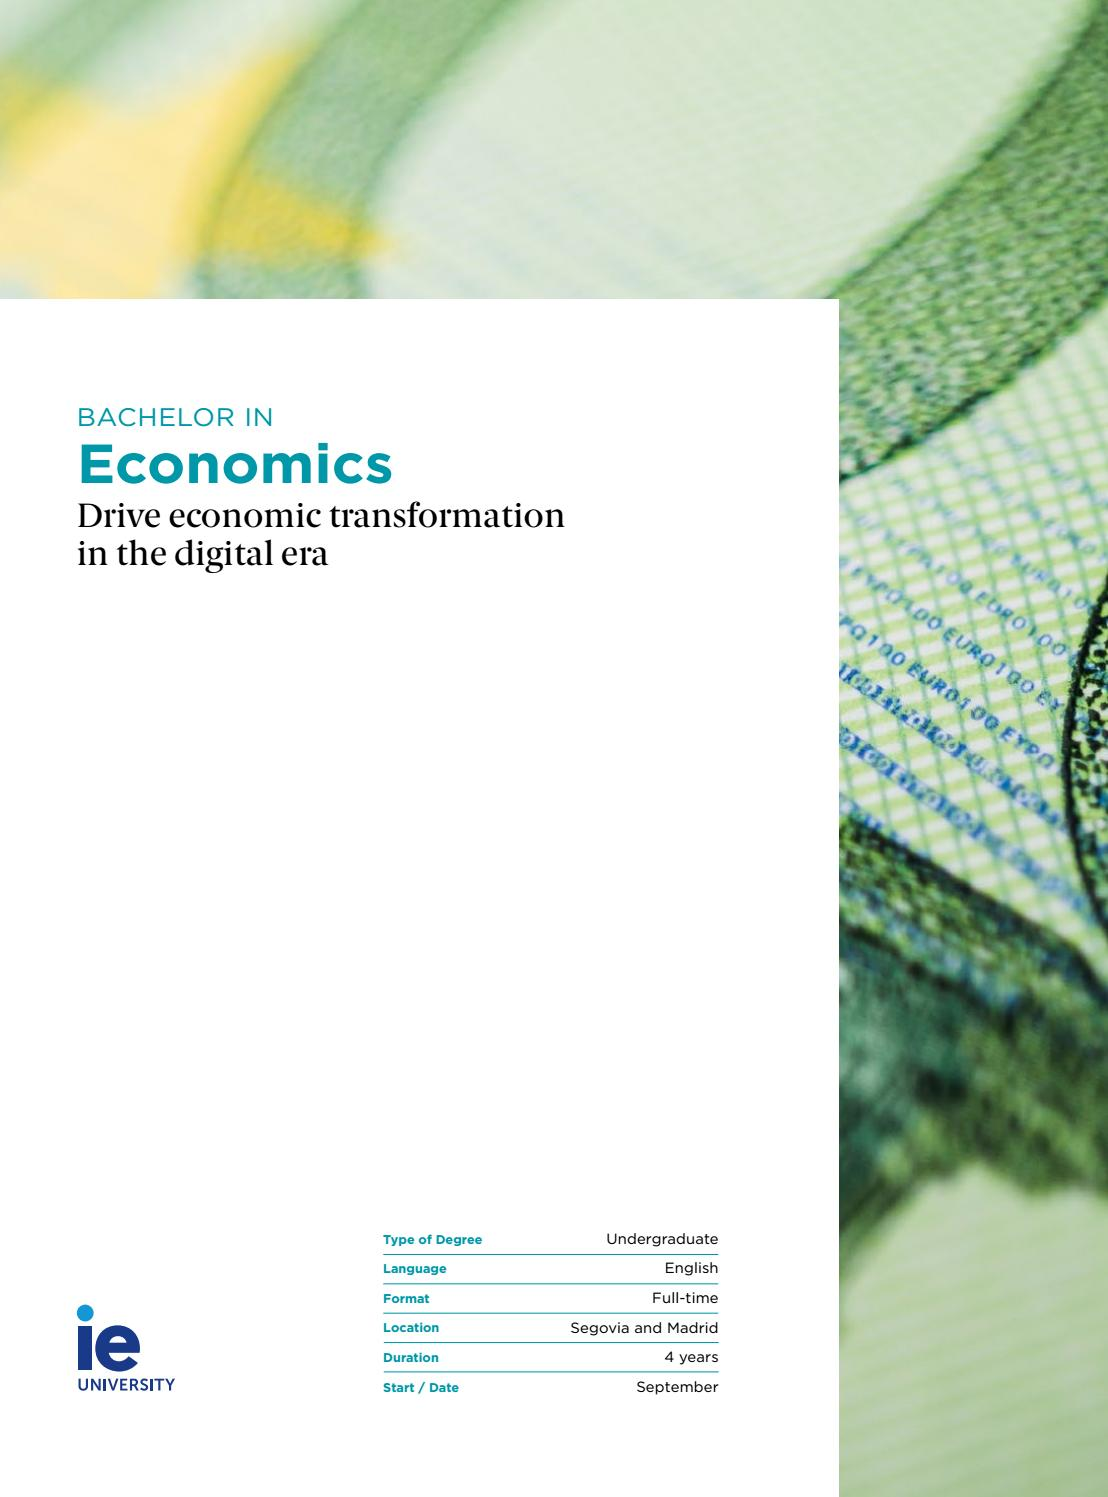 Bachelor In Economics By Ie University Issuu